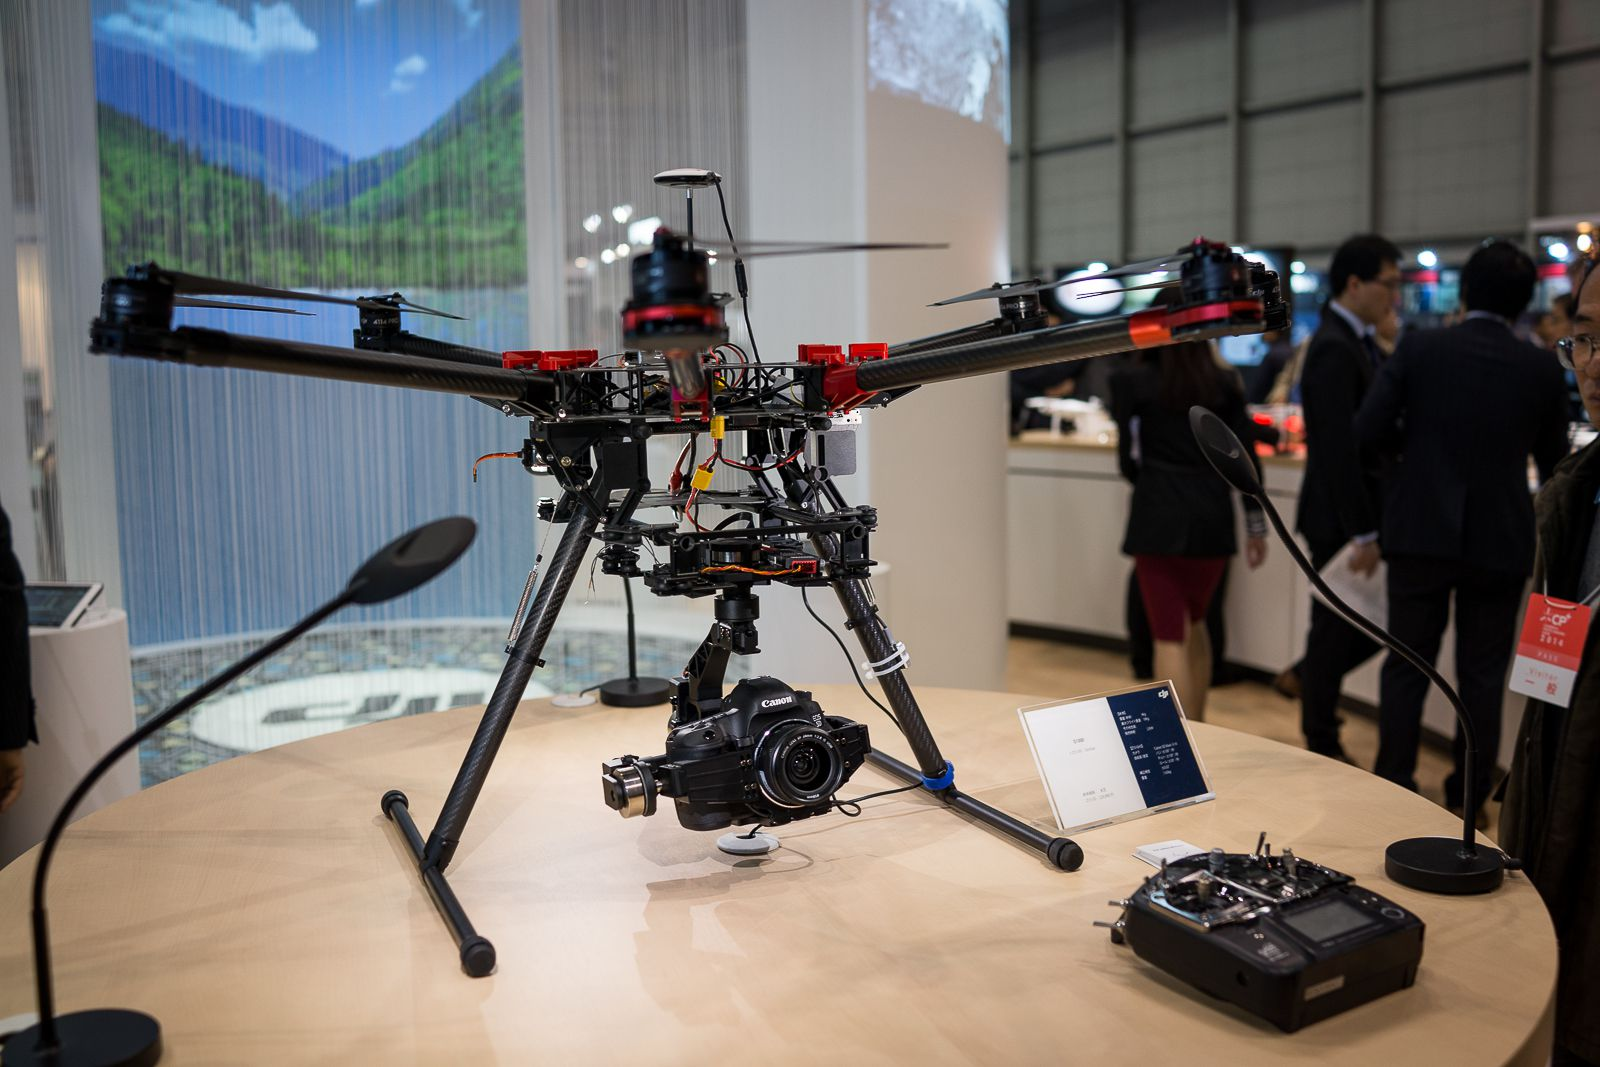 CP+ 2014 : Dji, Spreadwings S1000 équipé d'un 5D Mark III